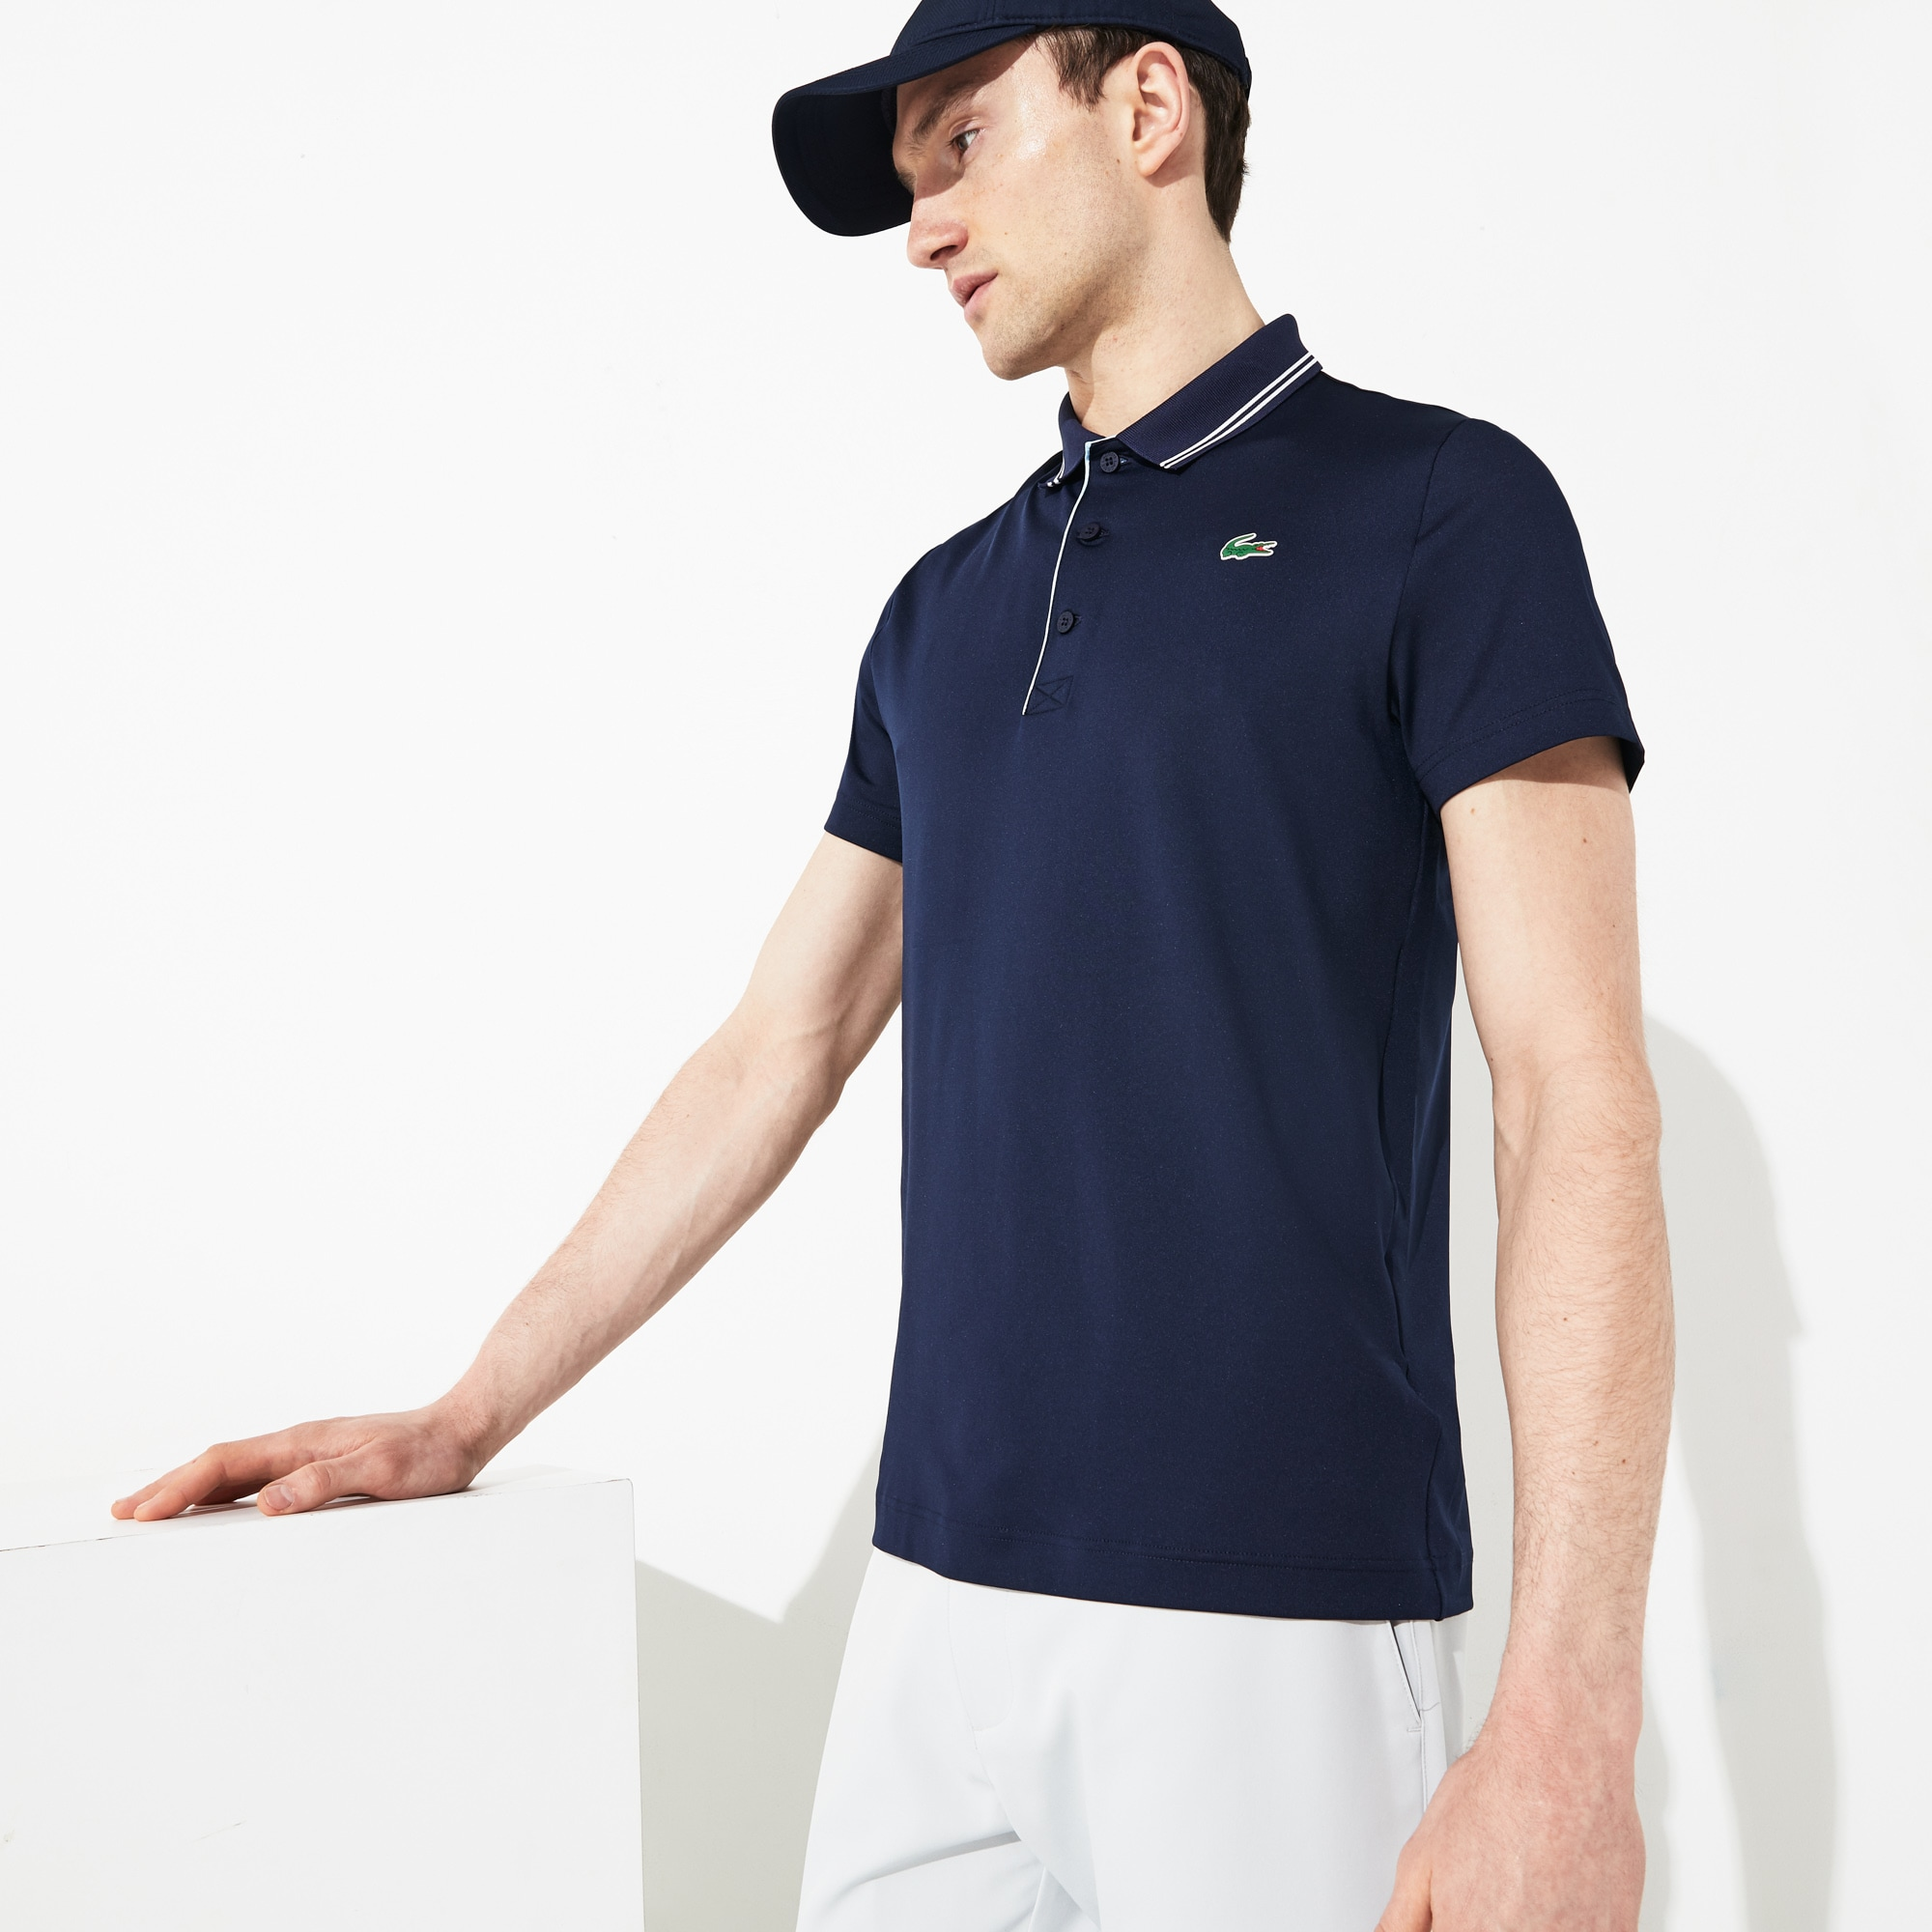 5b9af1dc Men's Lacoste SPORT Lettering Stretch Technical Jersey Golf Polo ...